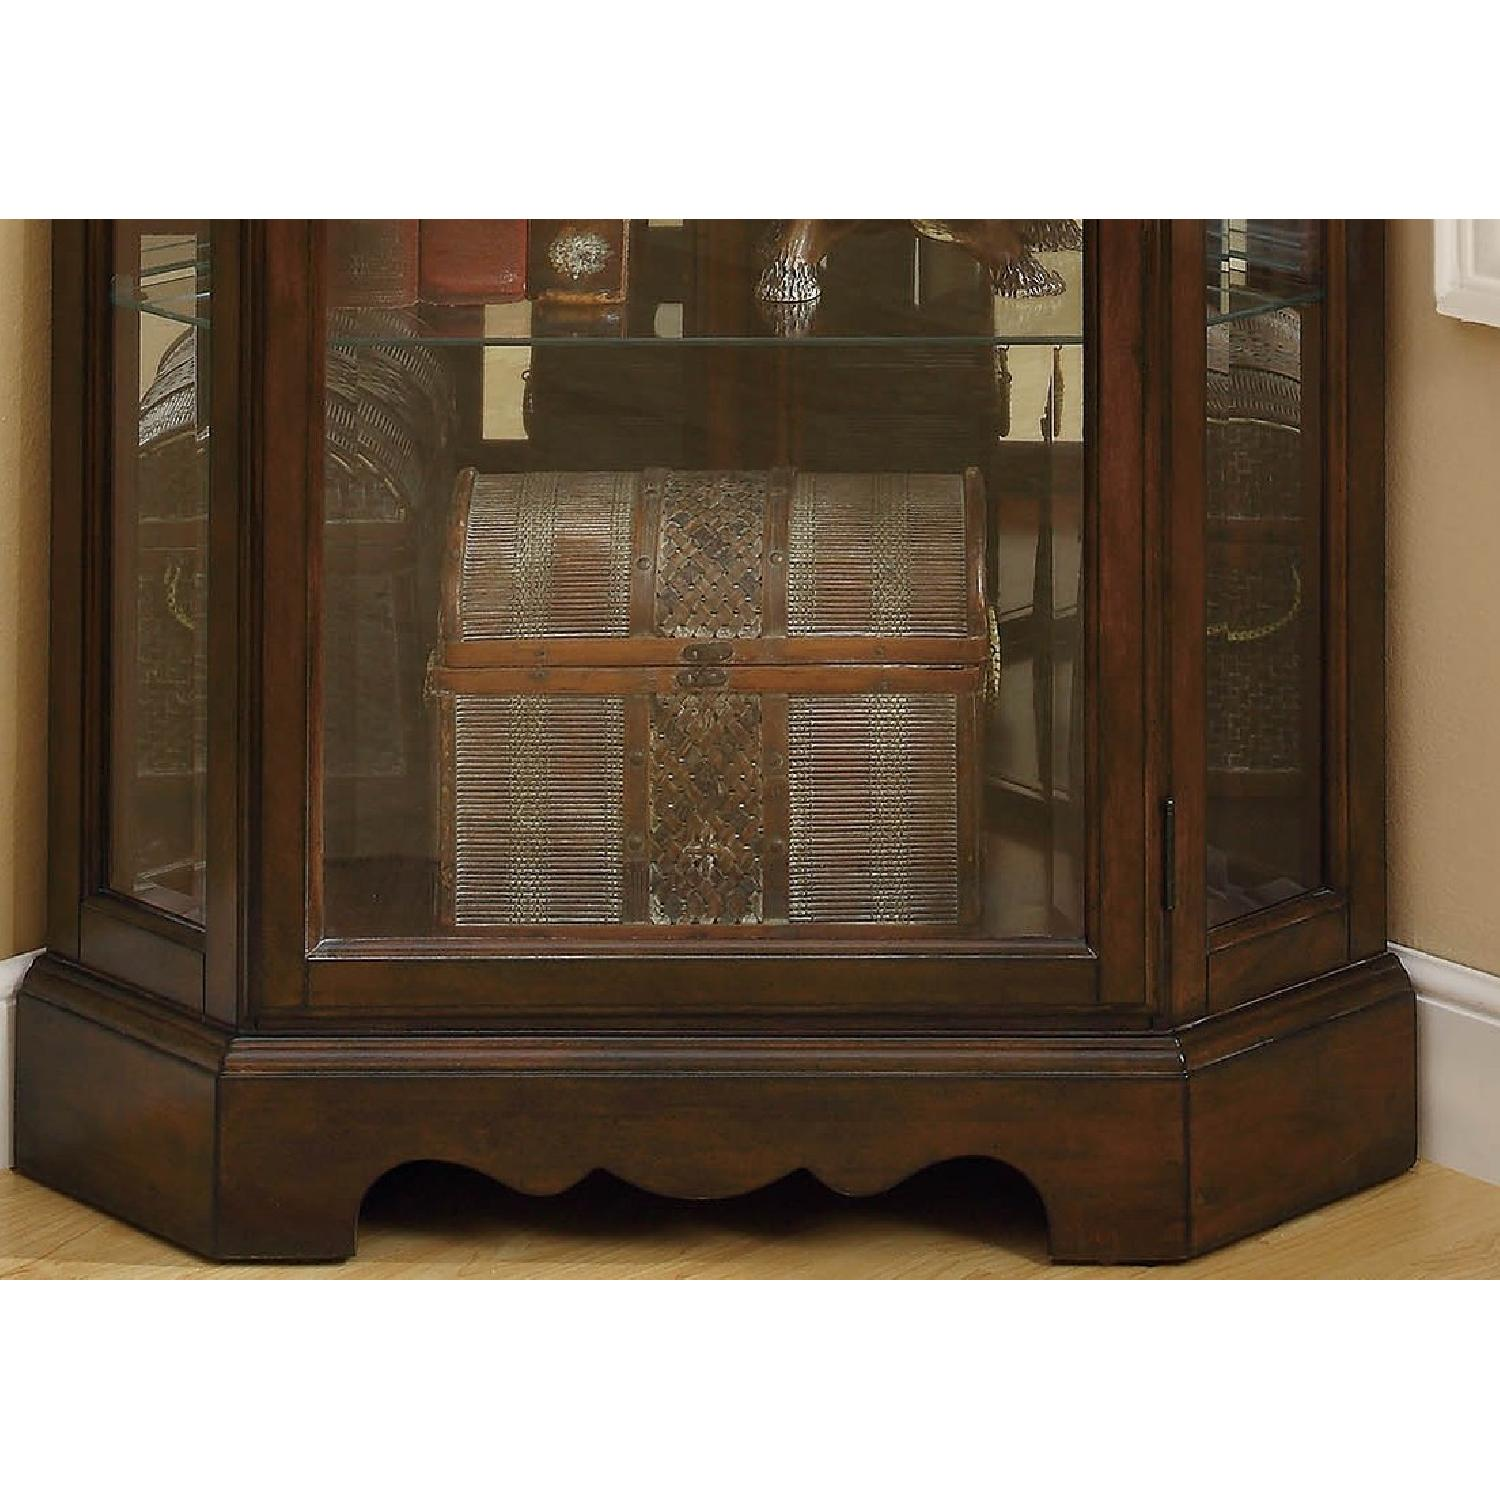 Traditional Corner Curio Cabinet in Burnished Brown Finish - image-6